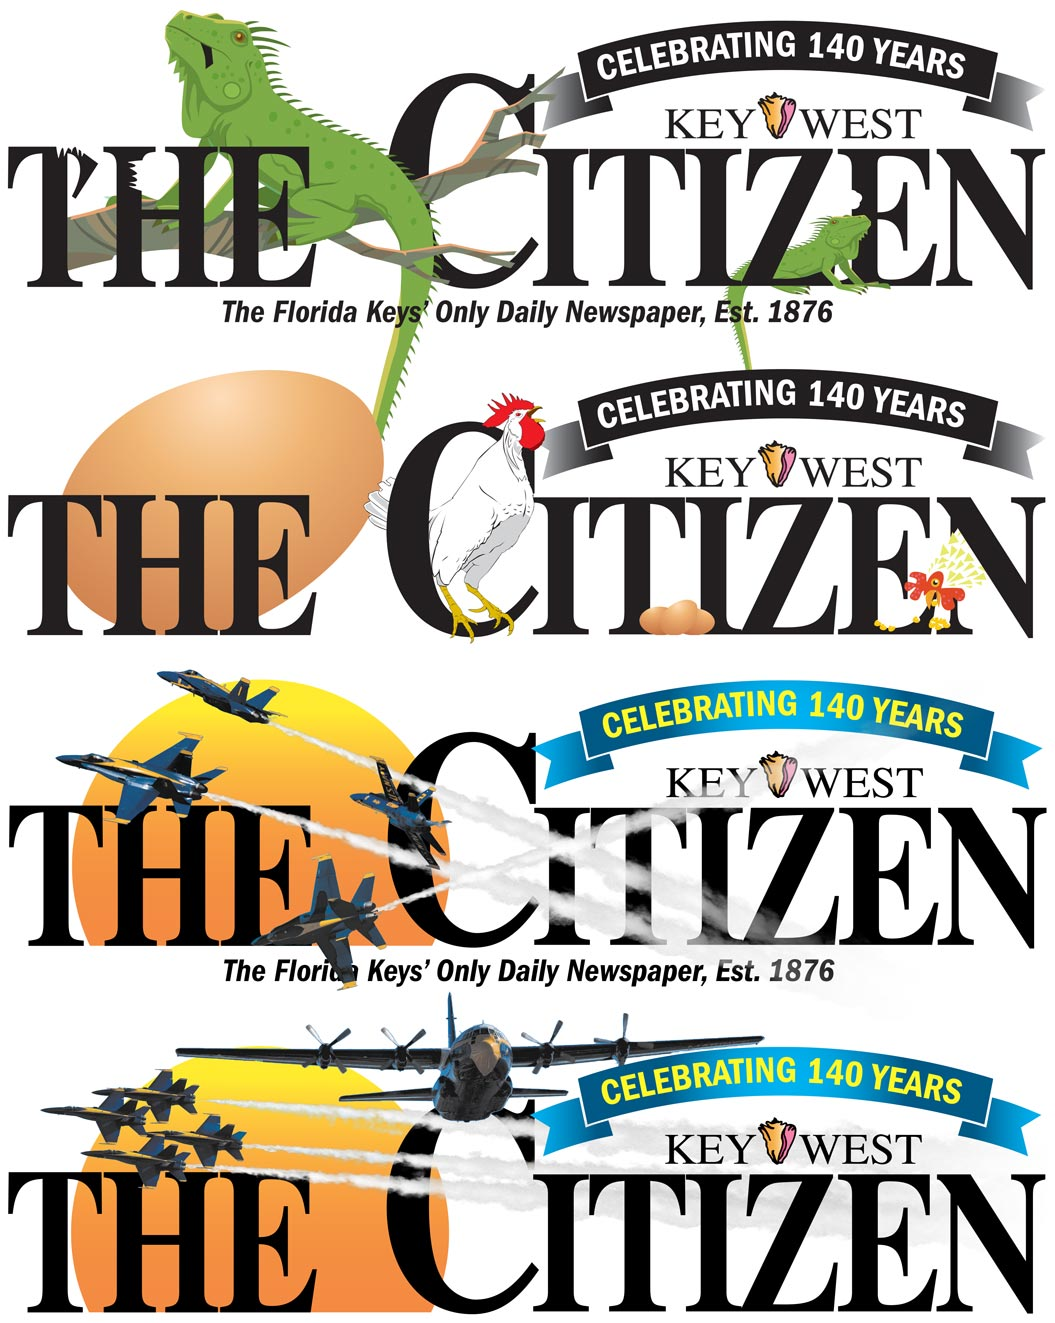 Examples of newspaper flag designs made for the Key West Citizen.